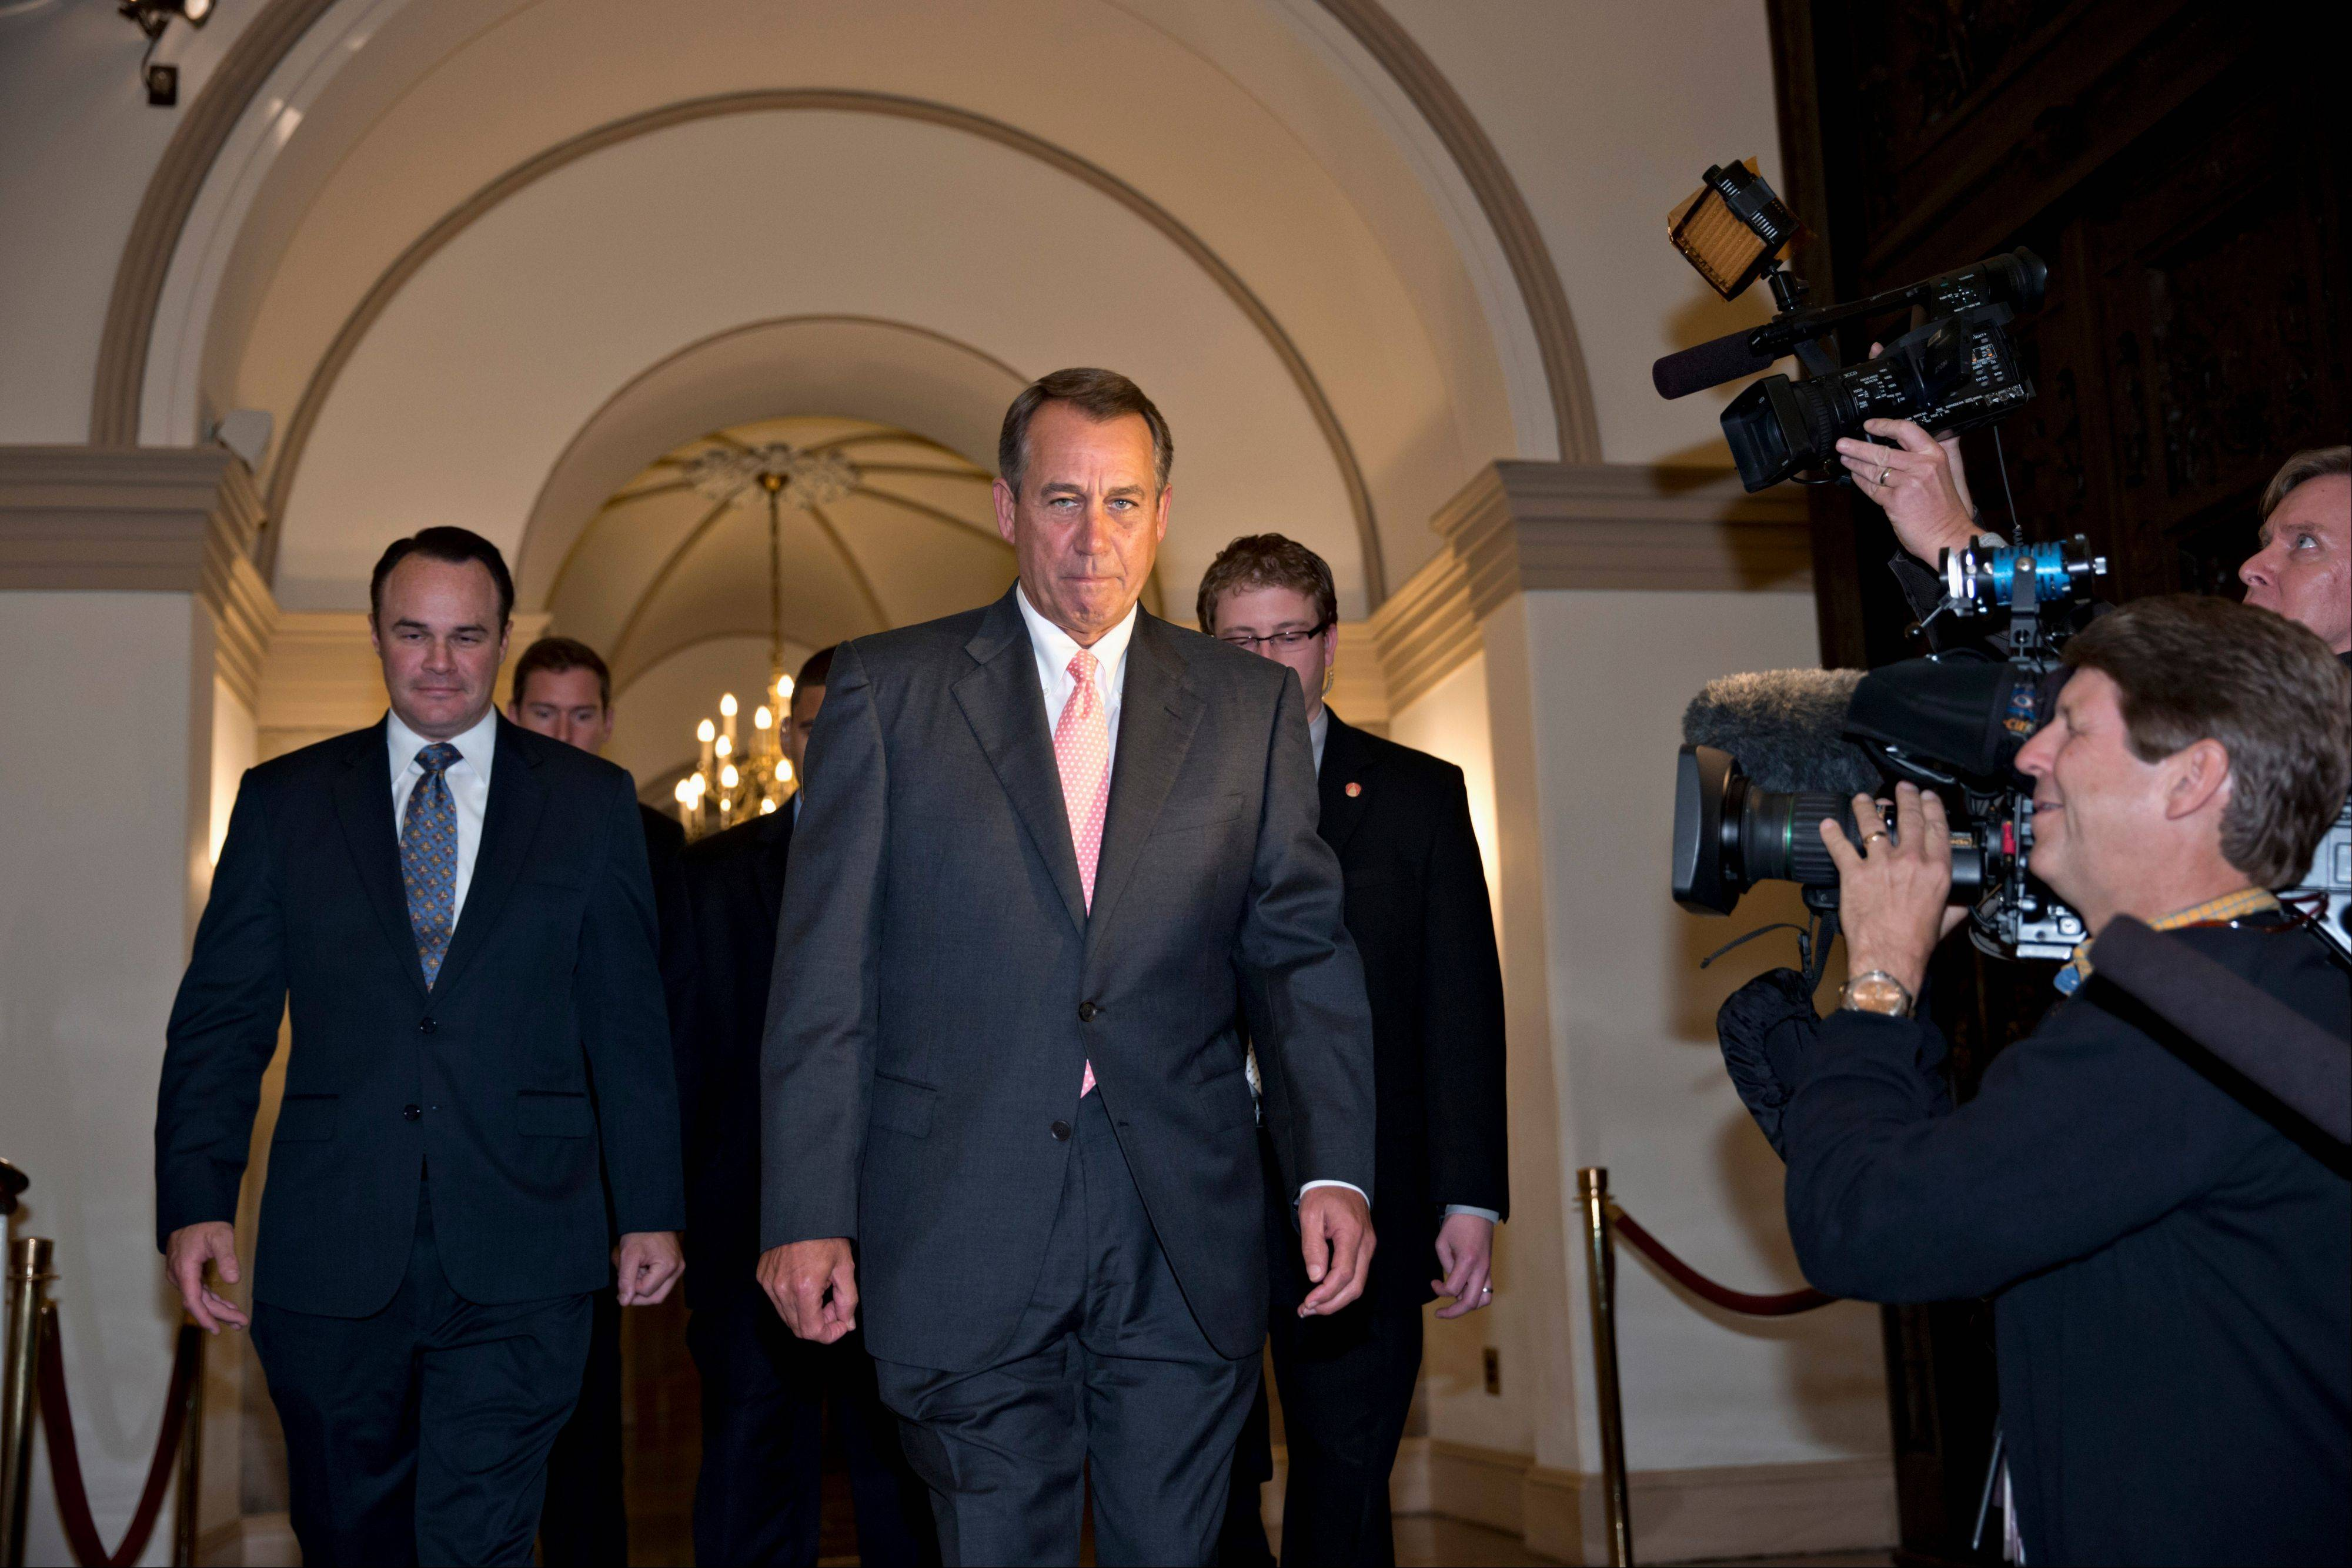 House Speaker John Boehner of Ohio departs the Capitol in Washington, Thursday en route to the White House to meet with President Barack Obama about a solution to ending the government shutdown.